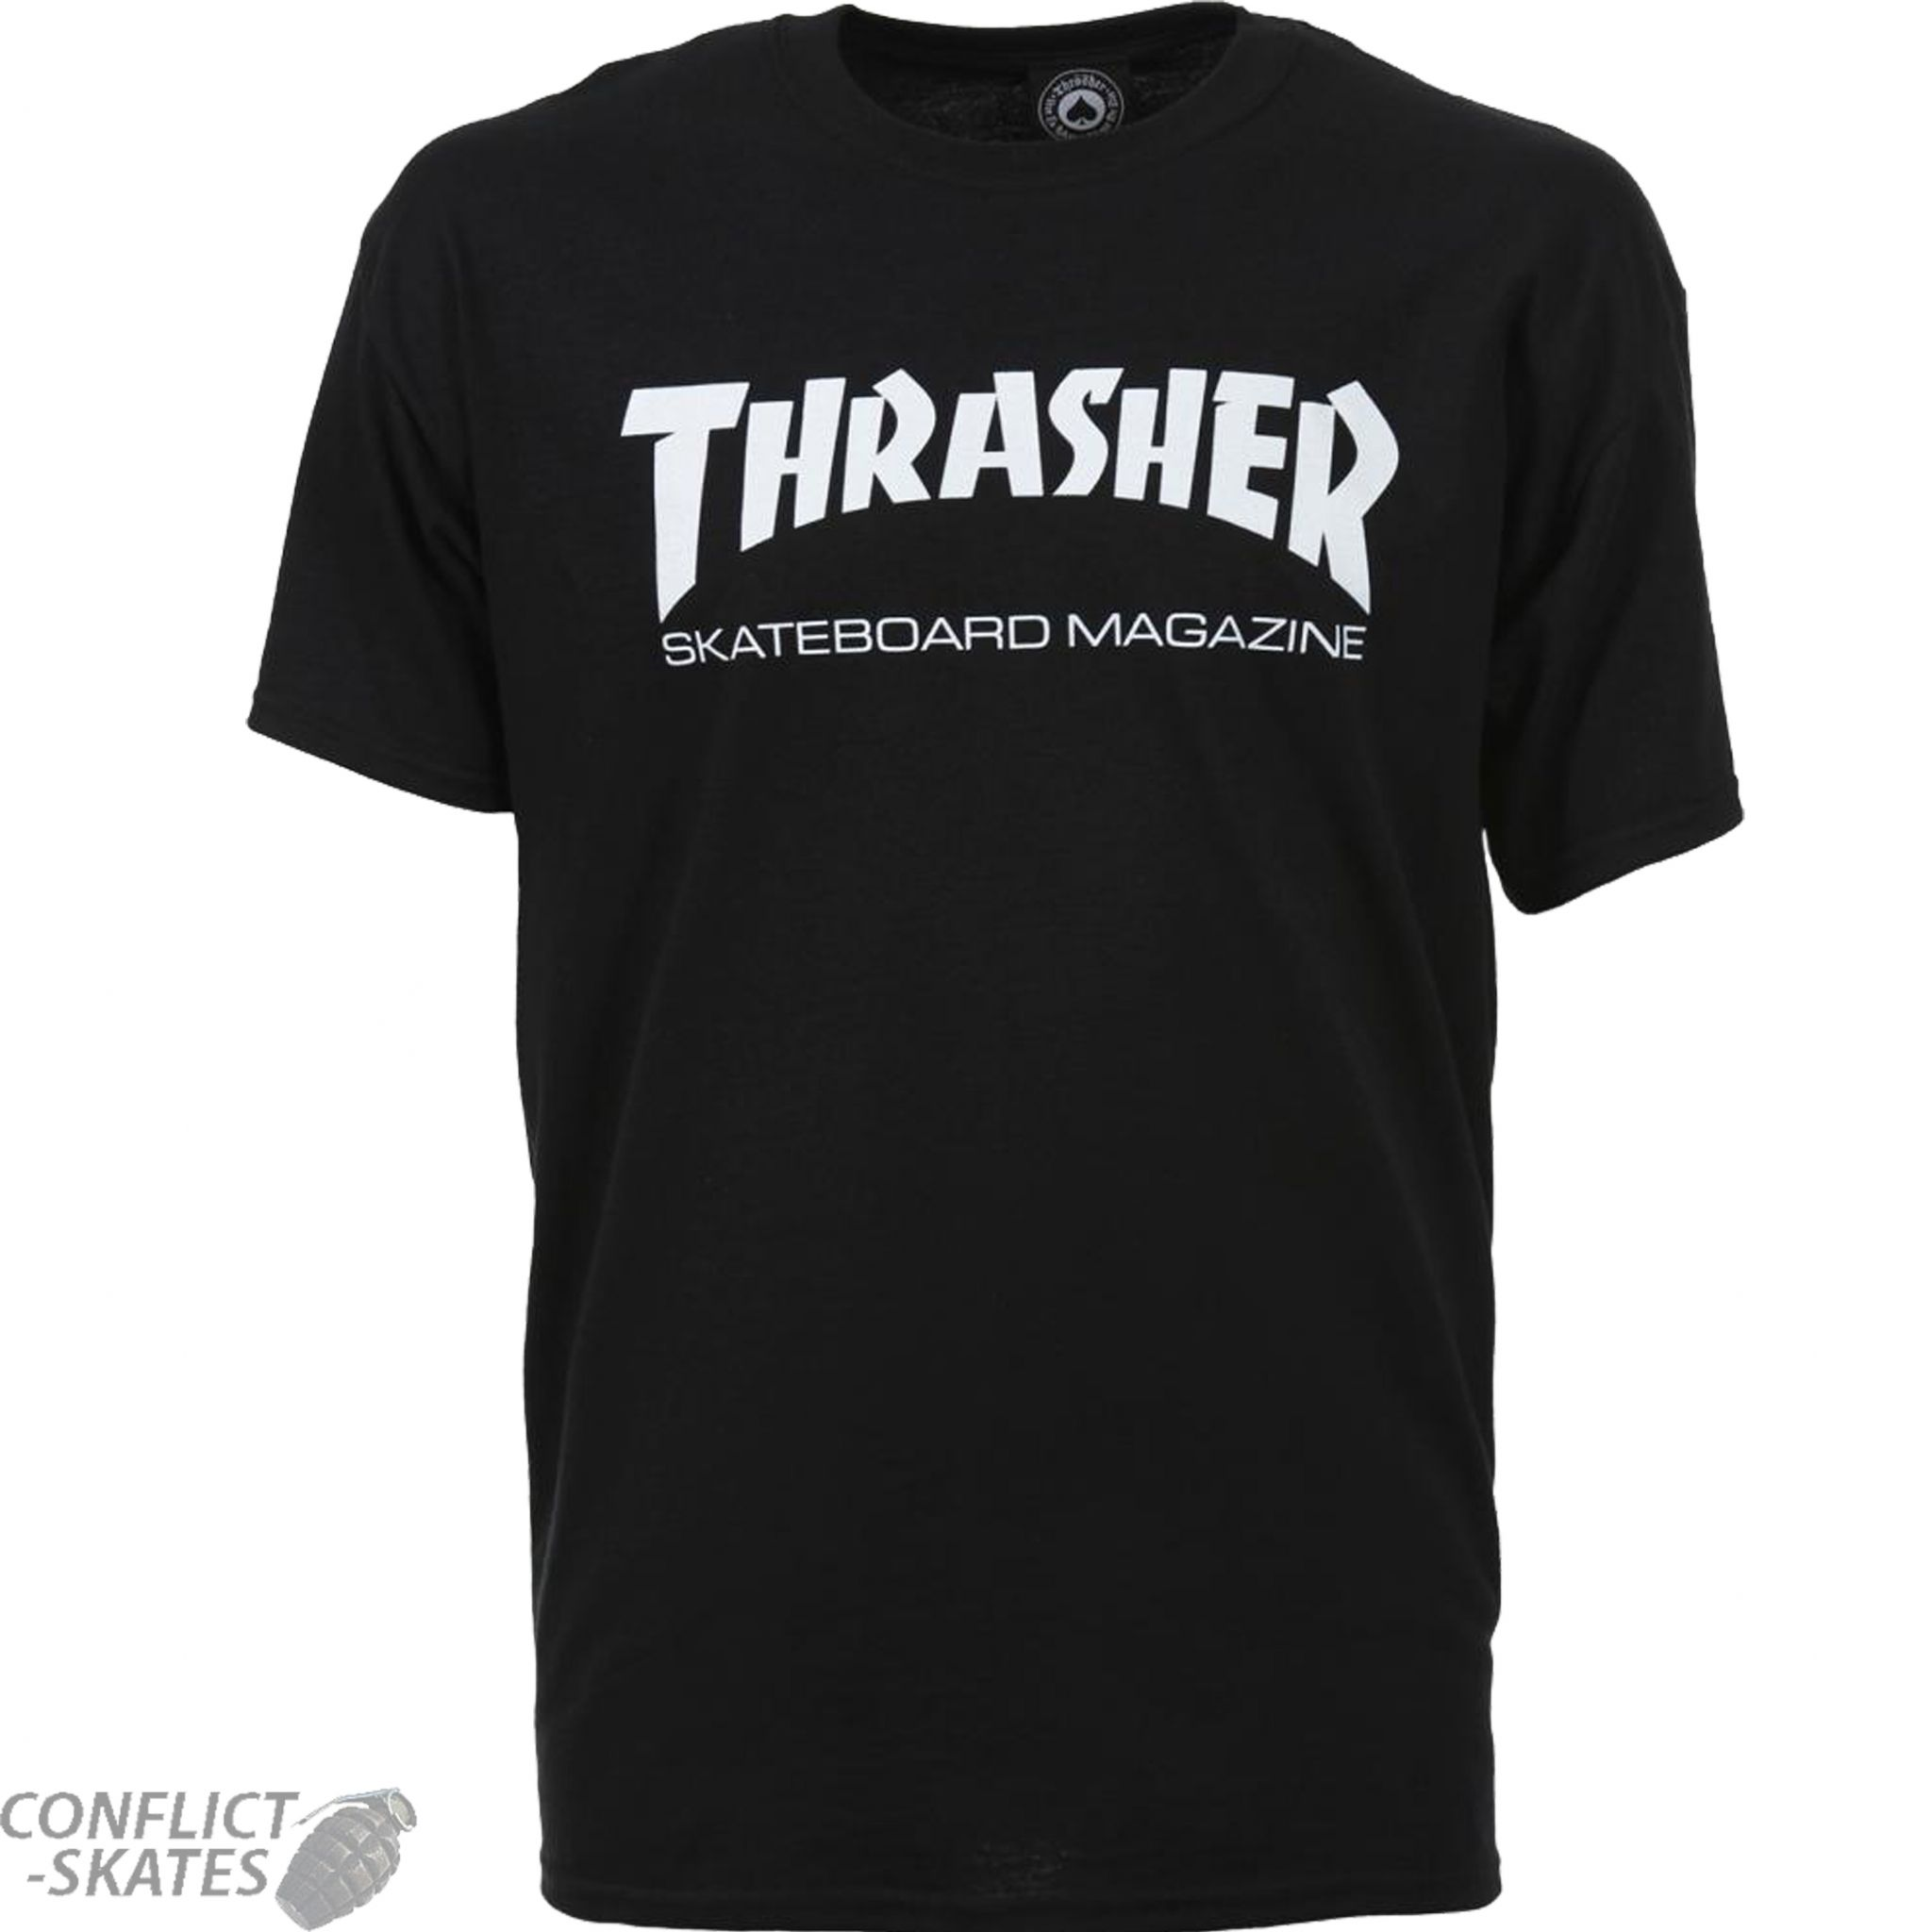 thrasher magazine skate mag logo skateboard t shirt black s m l xl or xxl. Black Bedroom Furniture Sets. Home Design Ideas